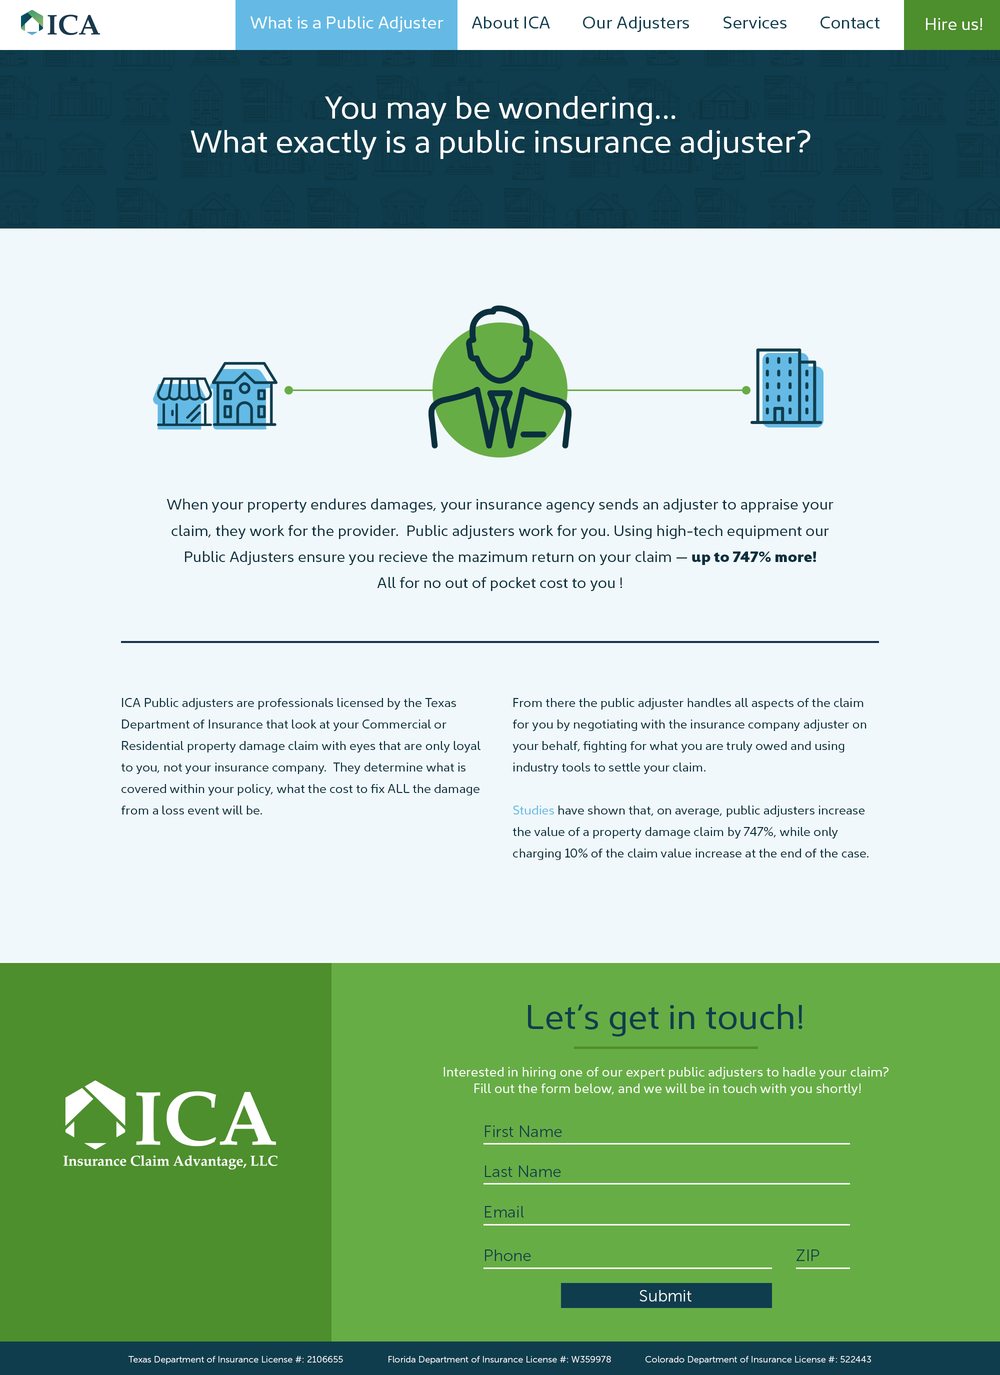 ICA What is a public adjuster?